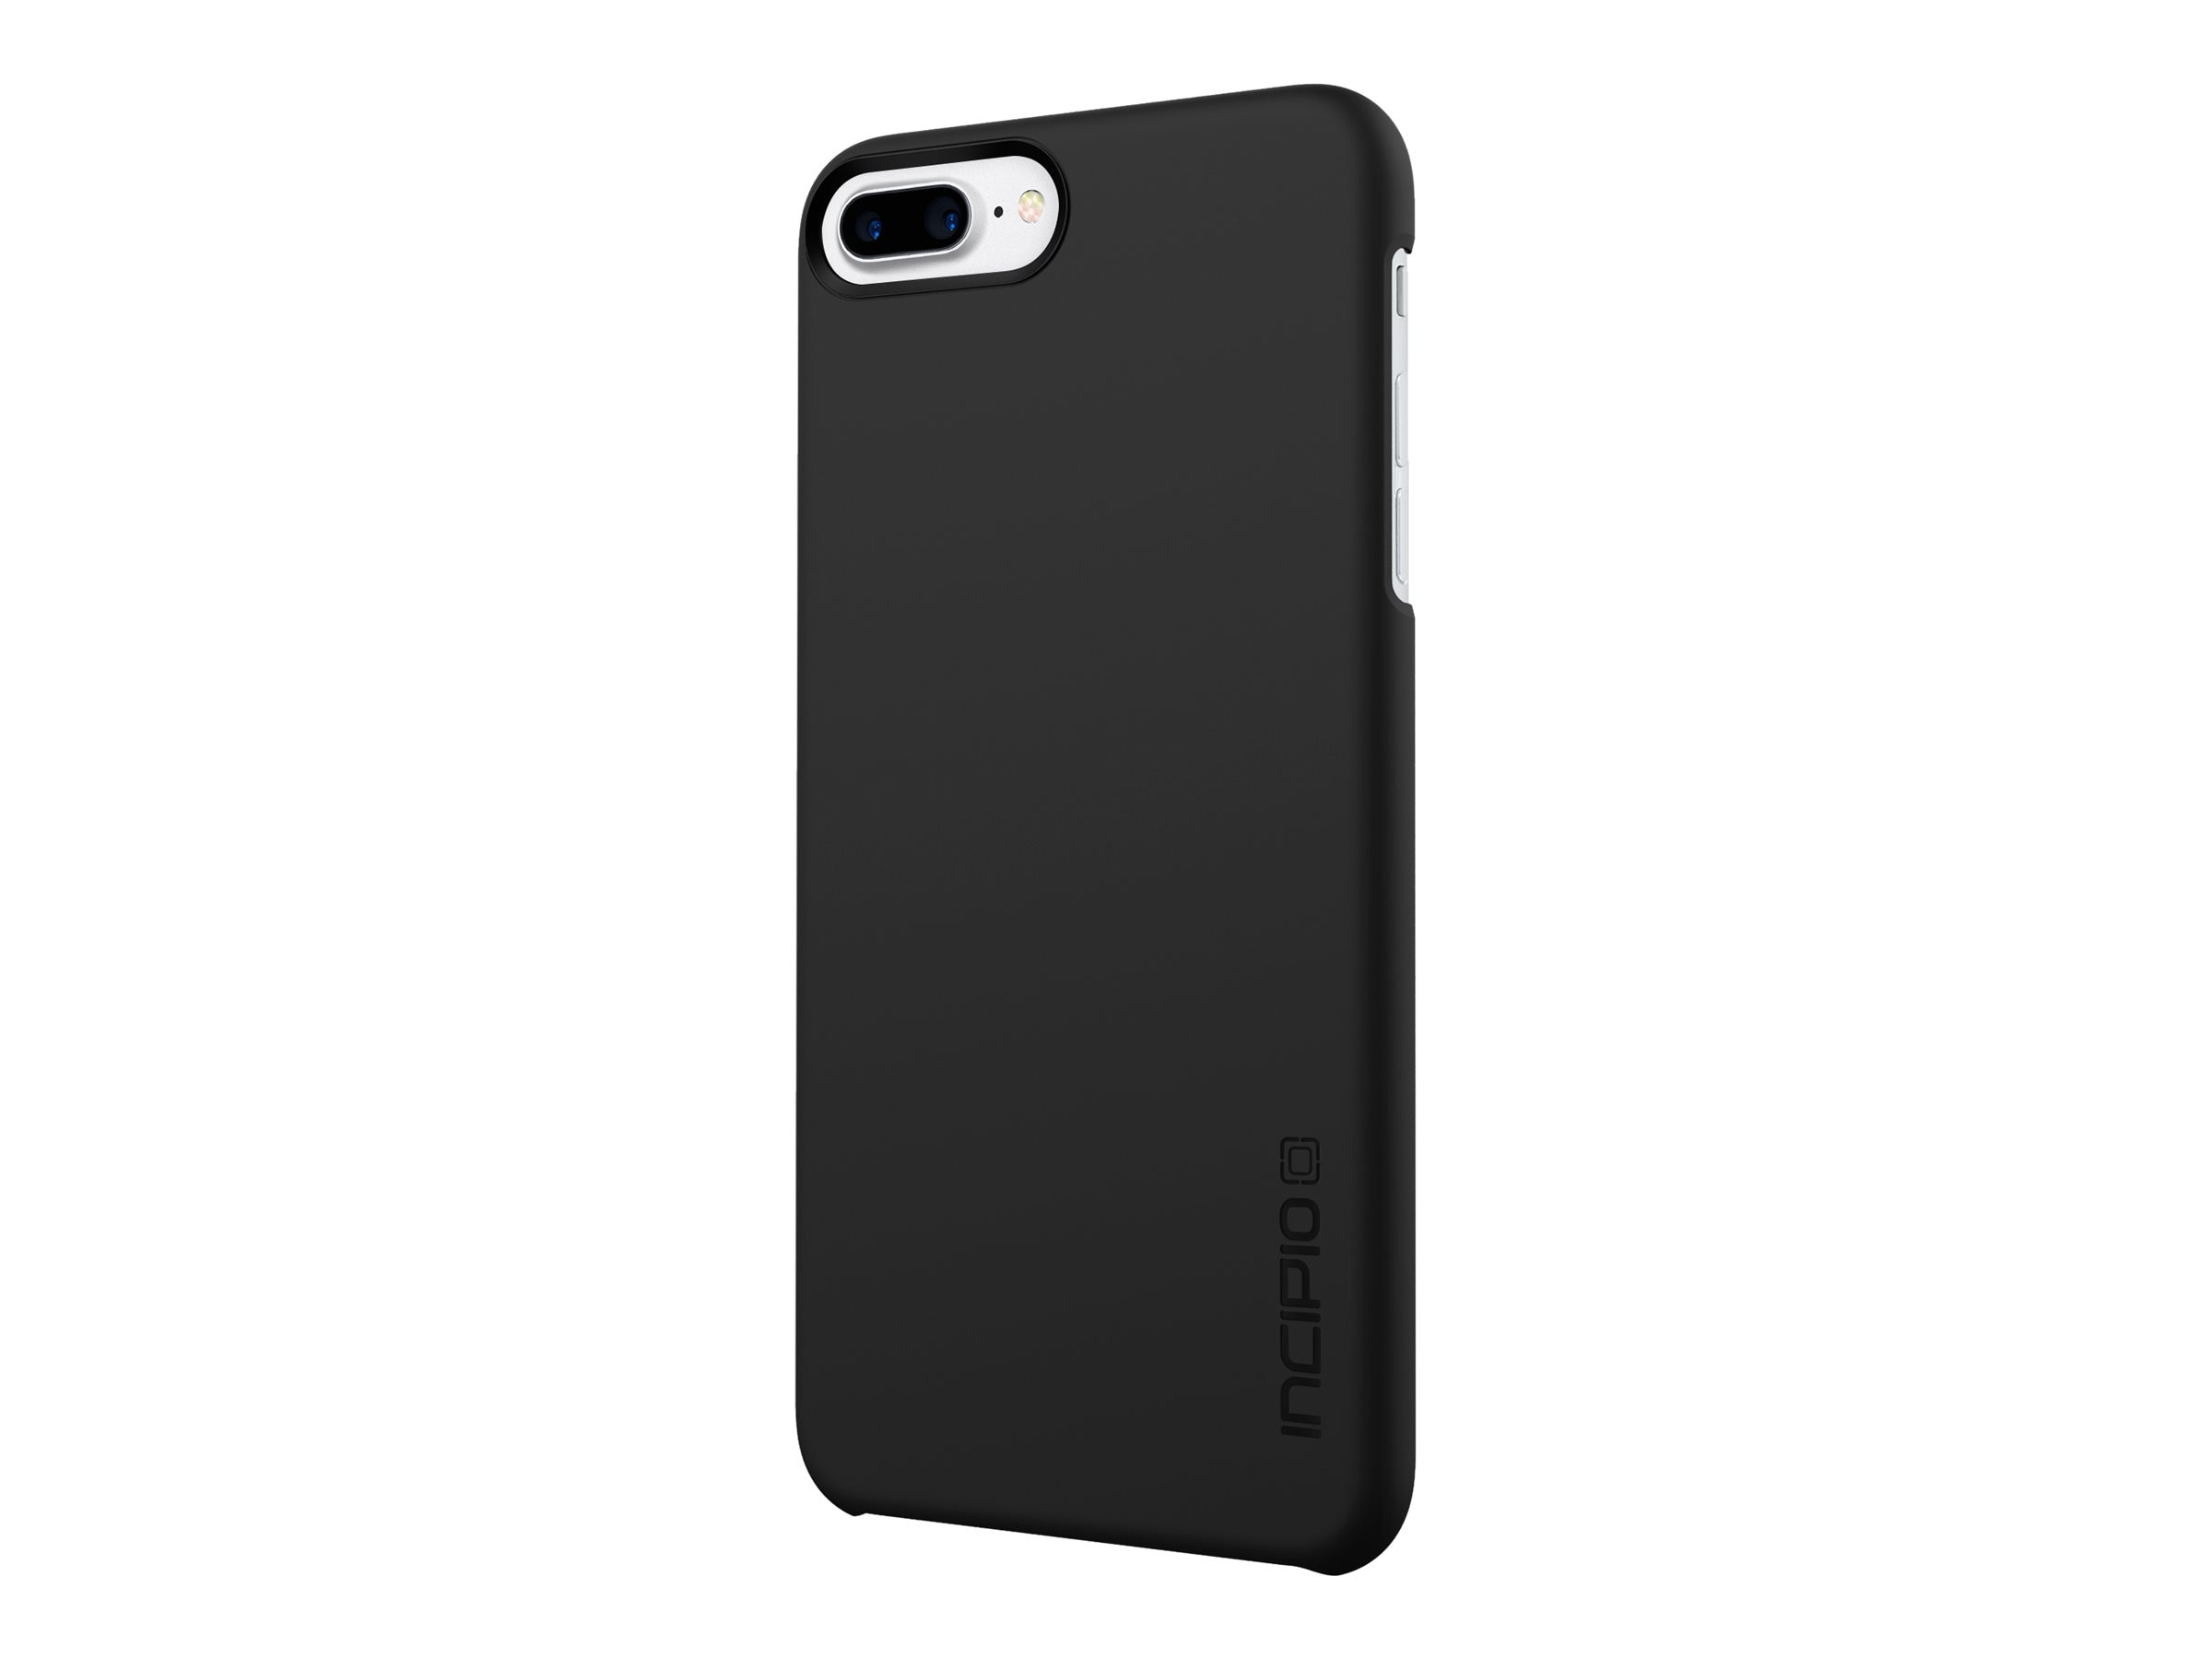 Incipio Feather Ultra Light Snap-On Case for iPhone 7 Plus, Black, IPH-1493-BLK